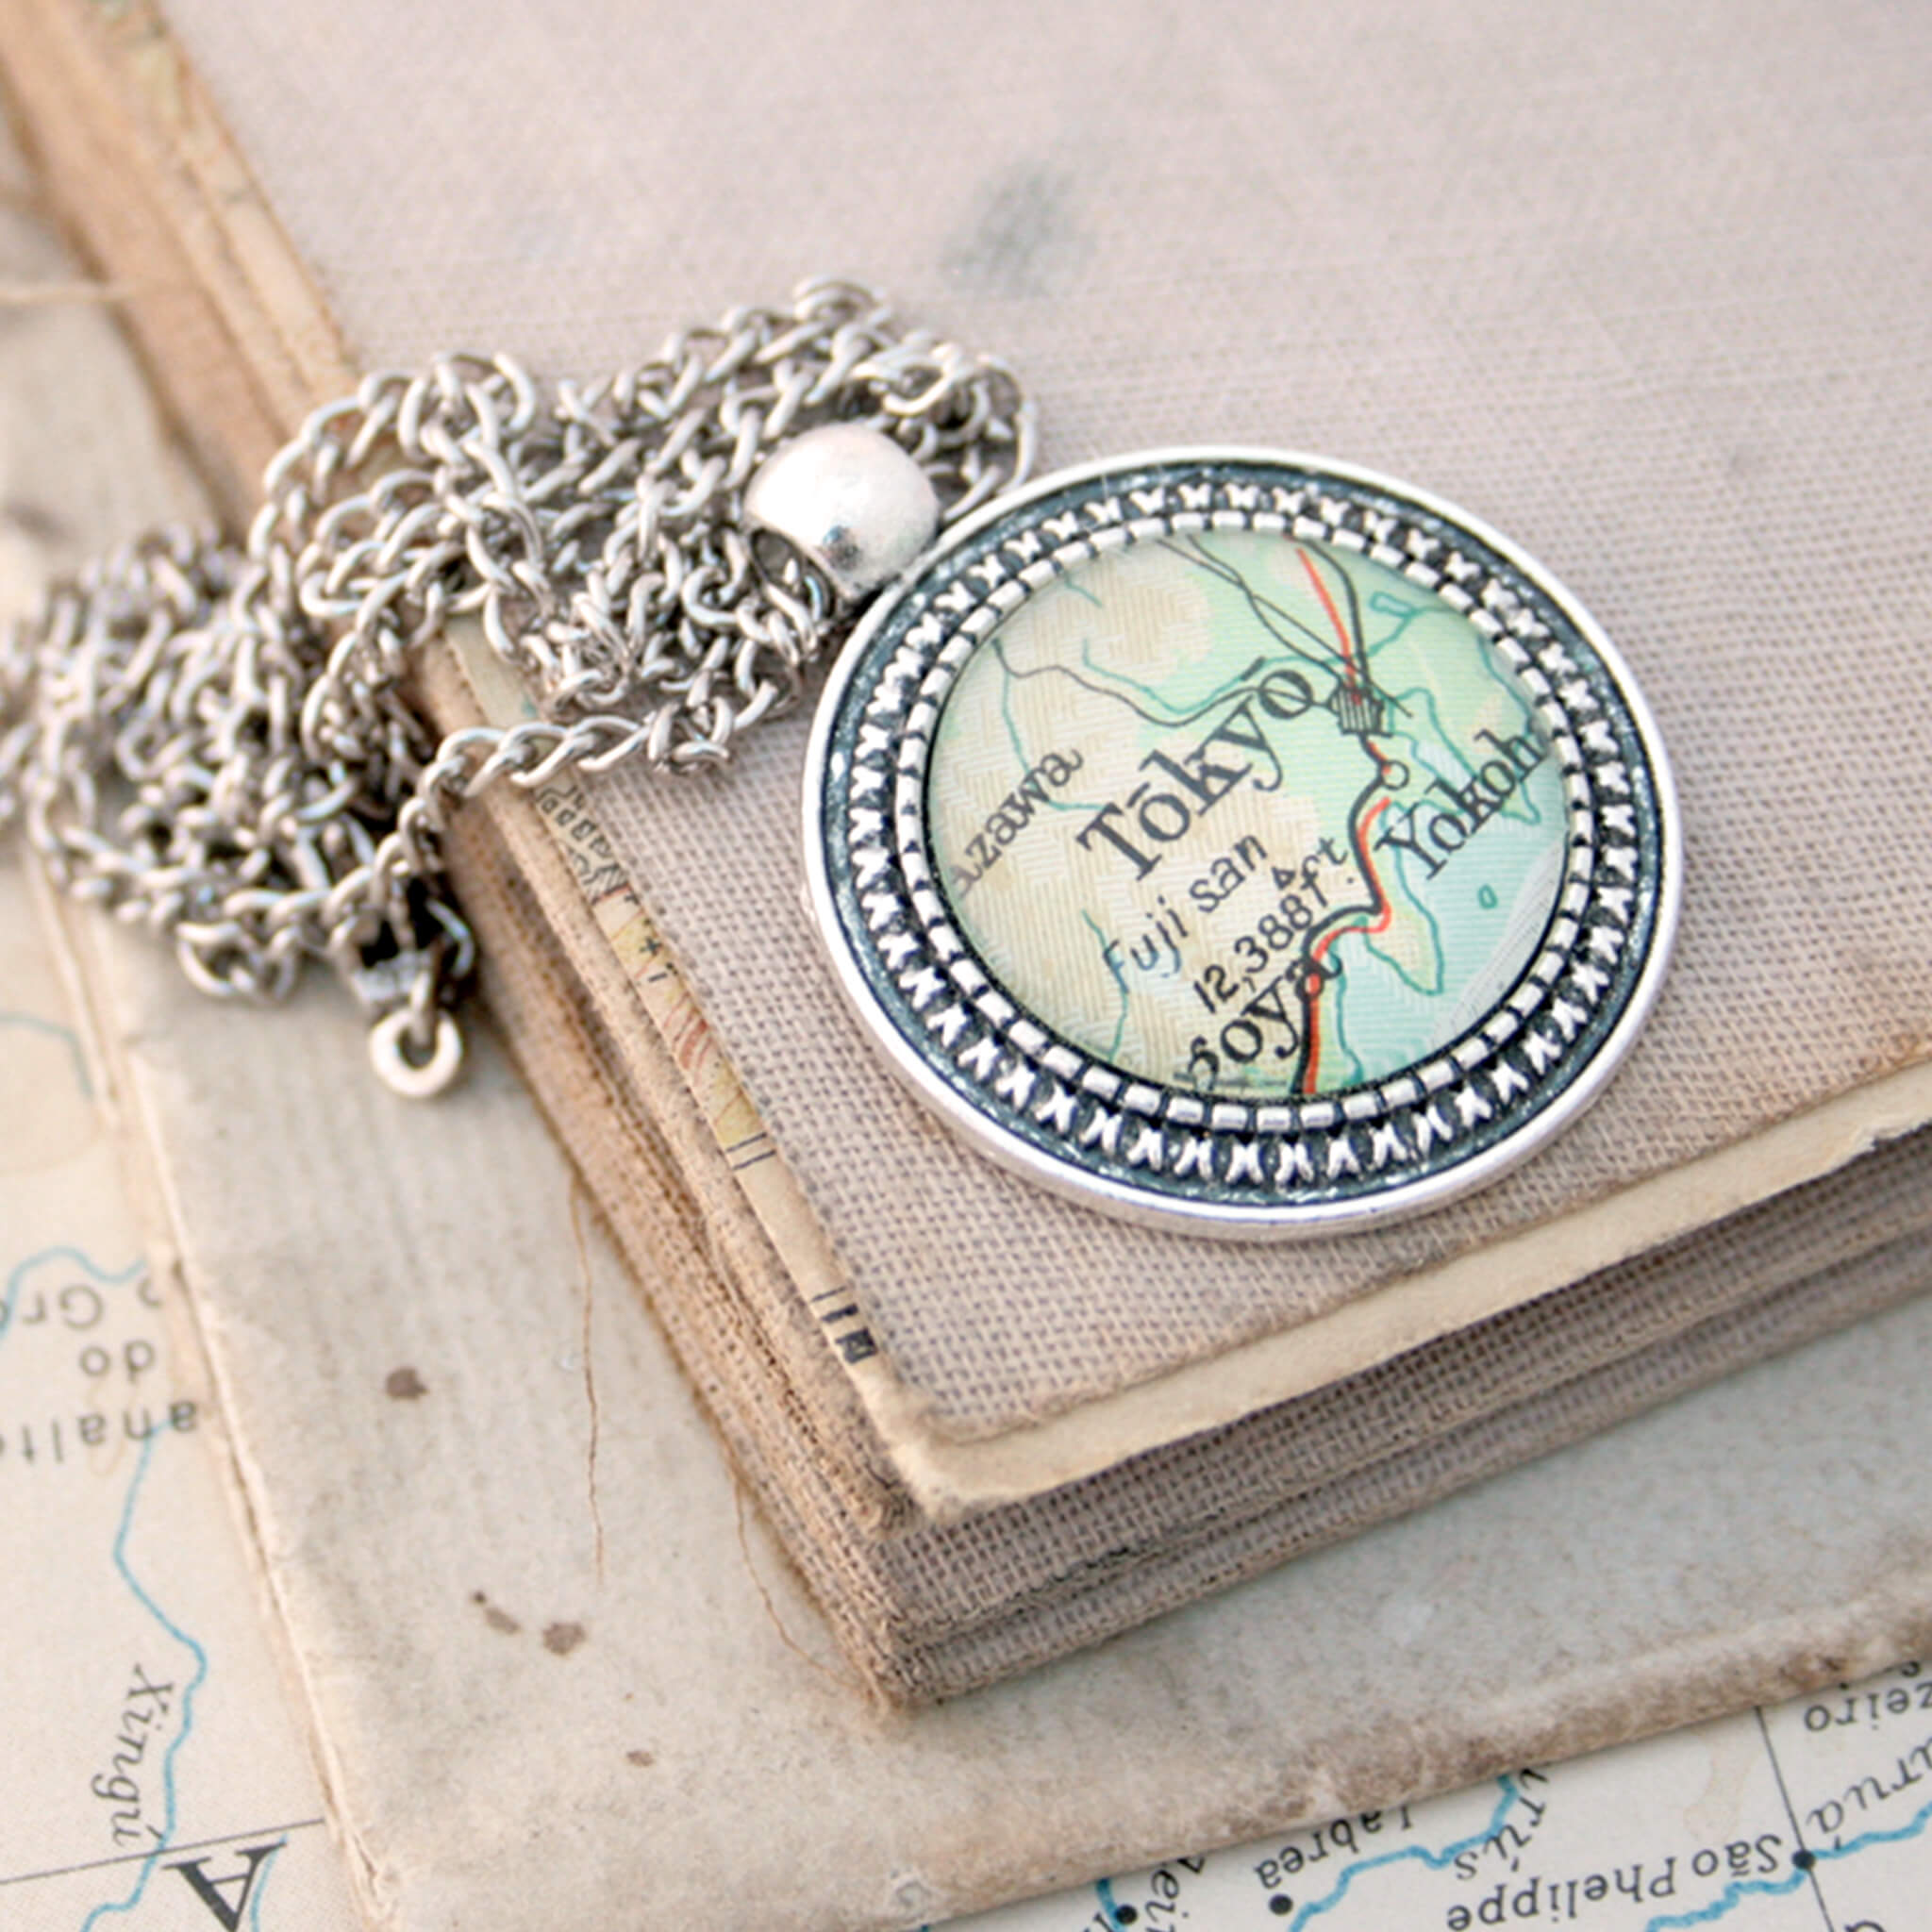 Silver coloured pendant necklace with map of Tokyo